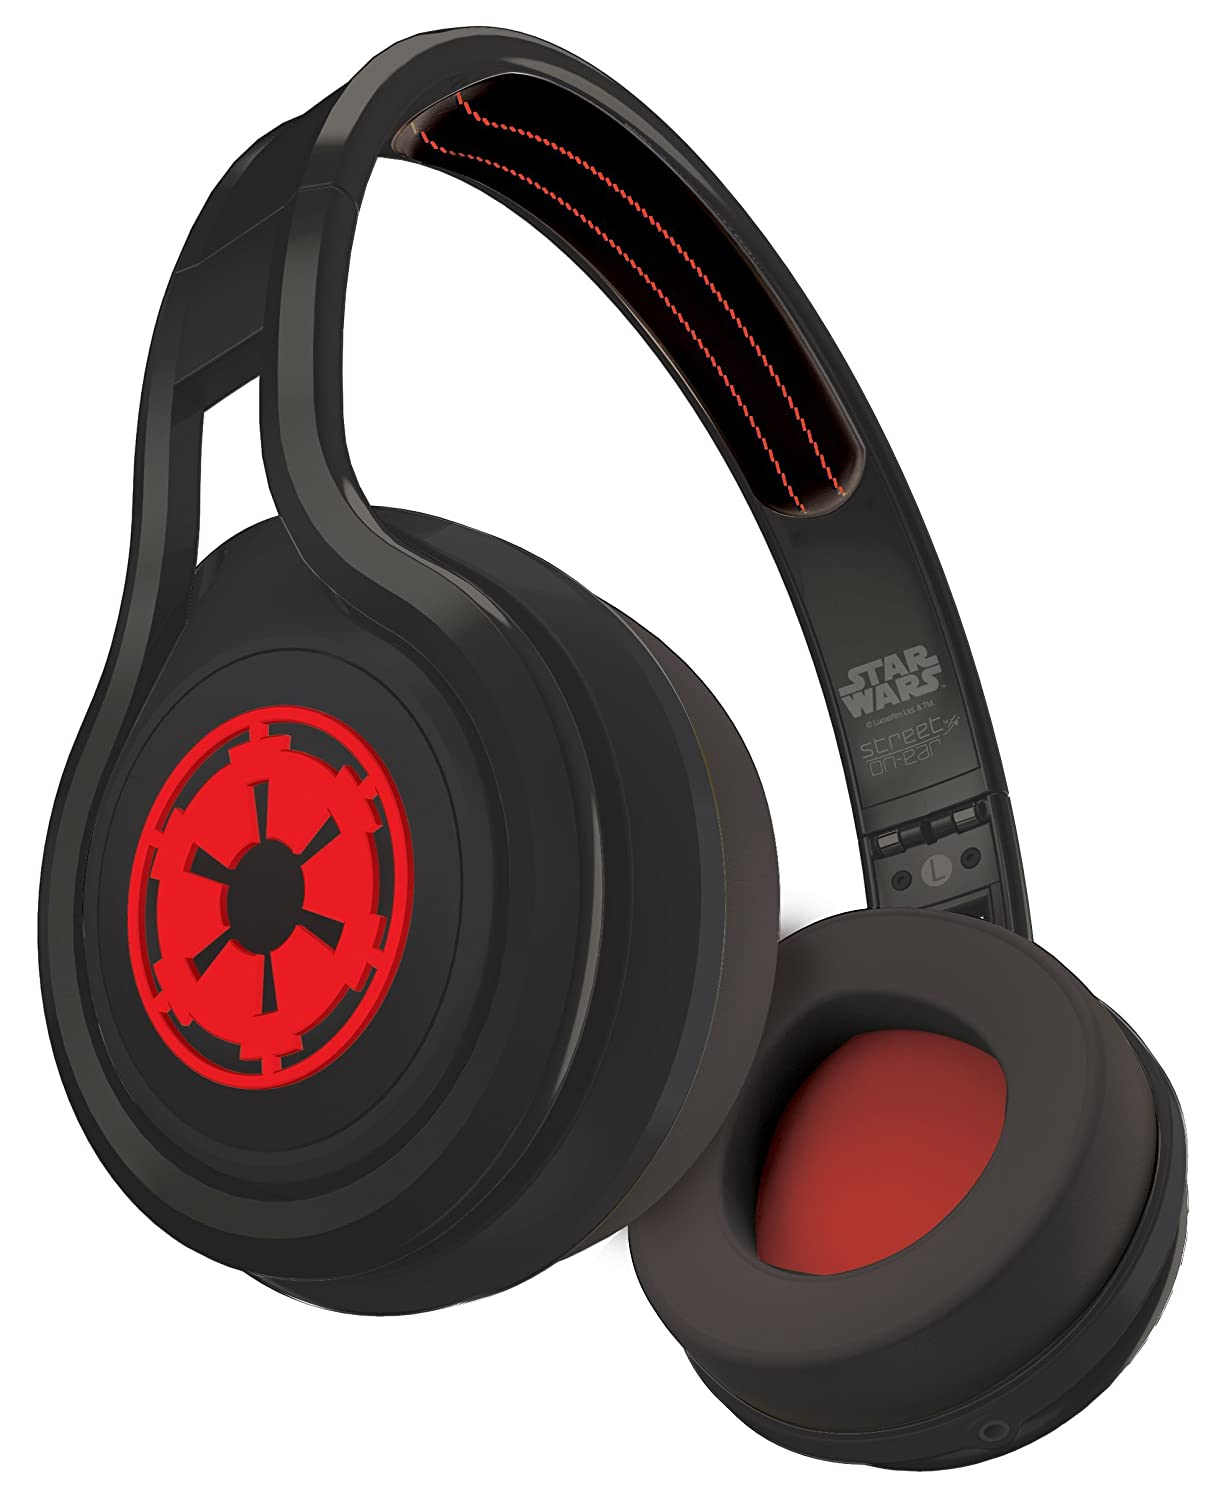 SMS Audio STREET by 50 Cent, First Edition Star Wars On Ear ...